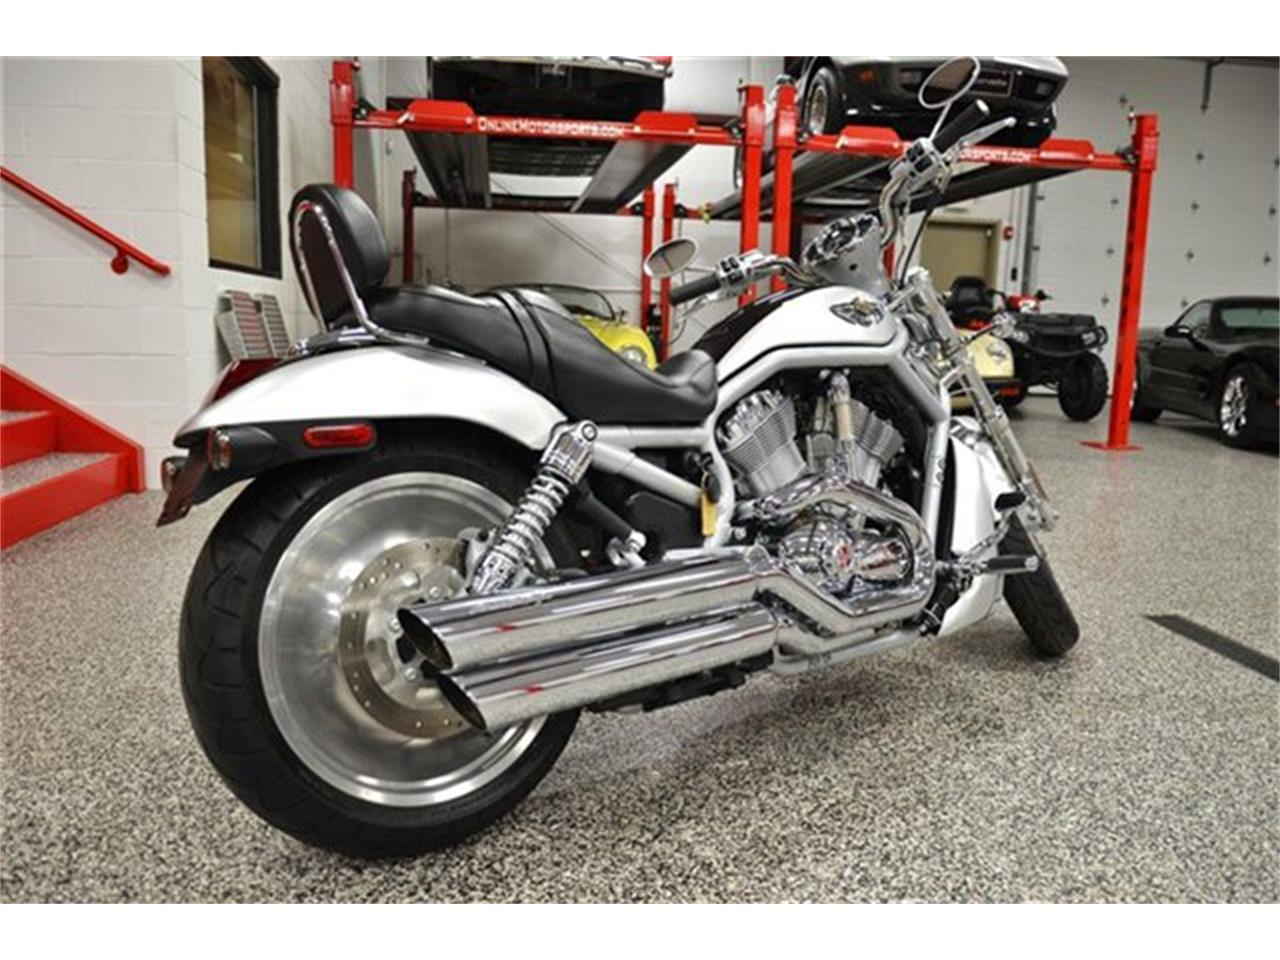 2003 Harley-Davidson VRSC for sale in Plainfield, IL – photo 31